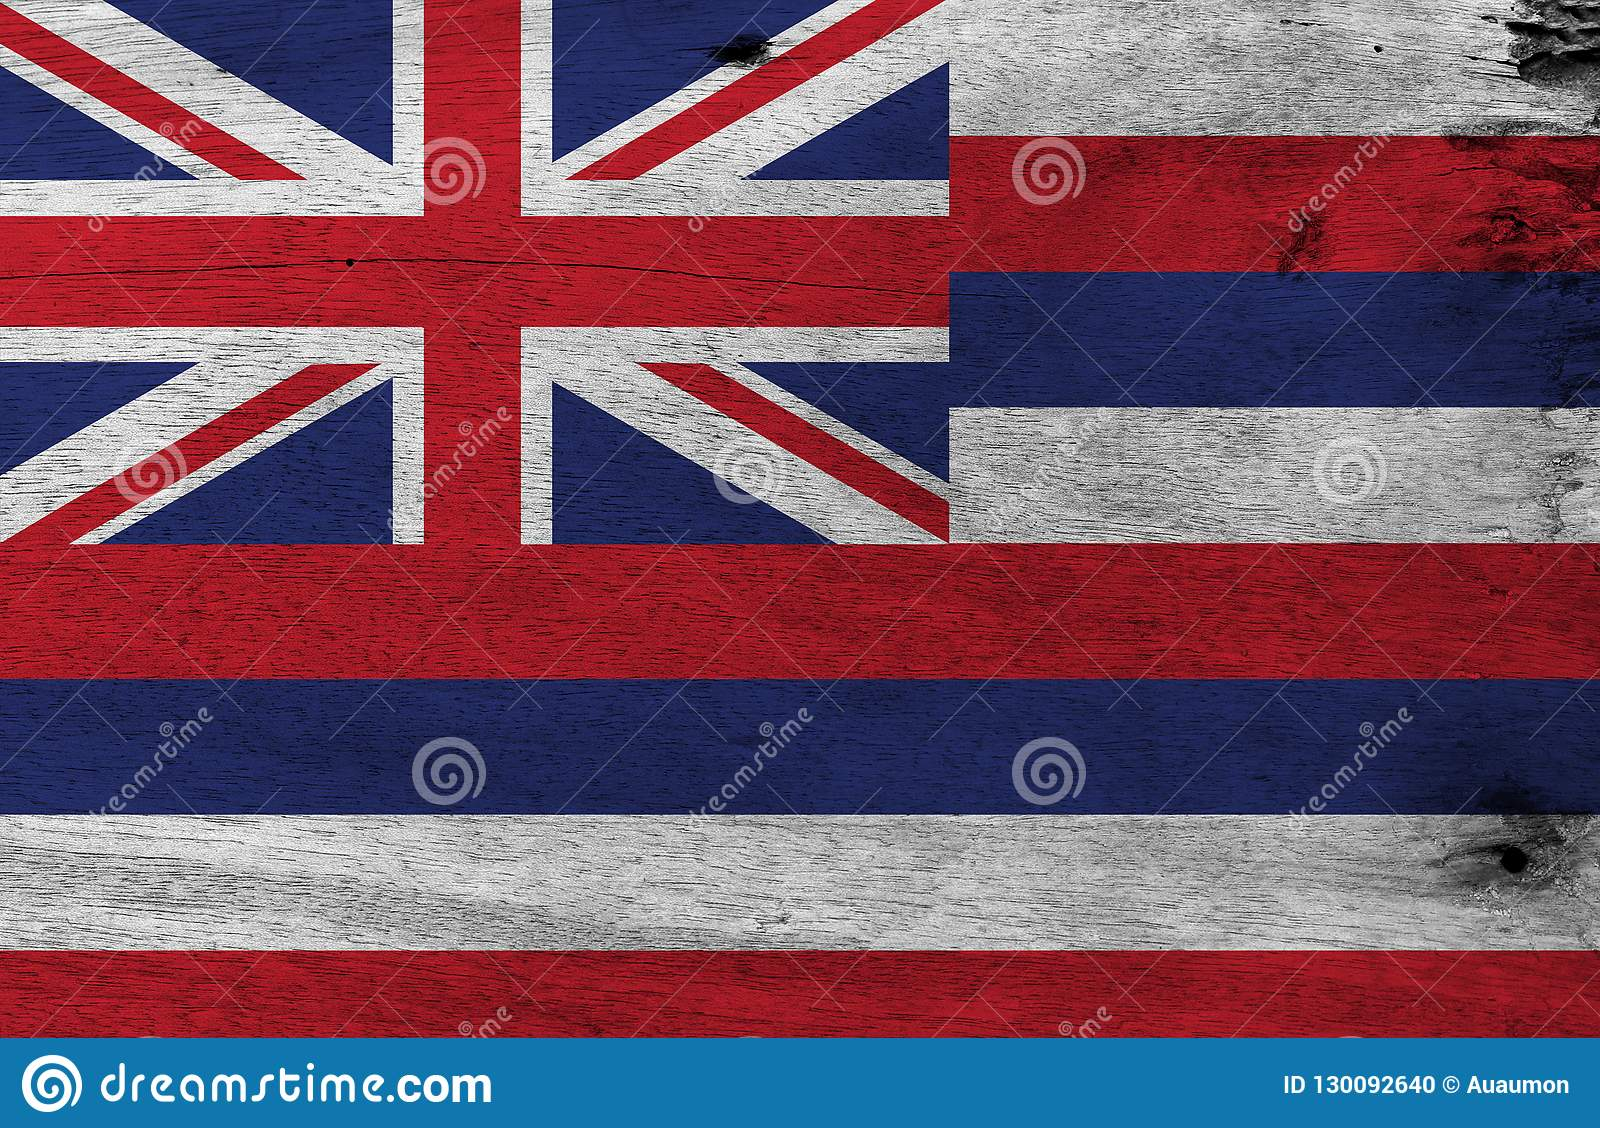 Flag of Hawaii on wooden plate background. Grunge Hawaii flag texture, The states of America.